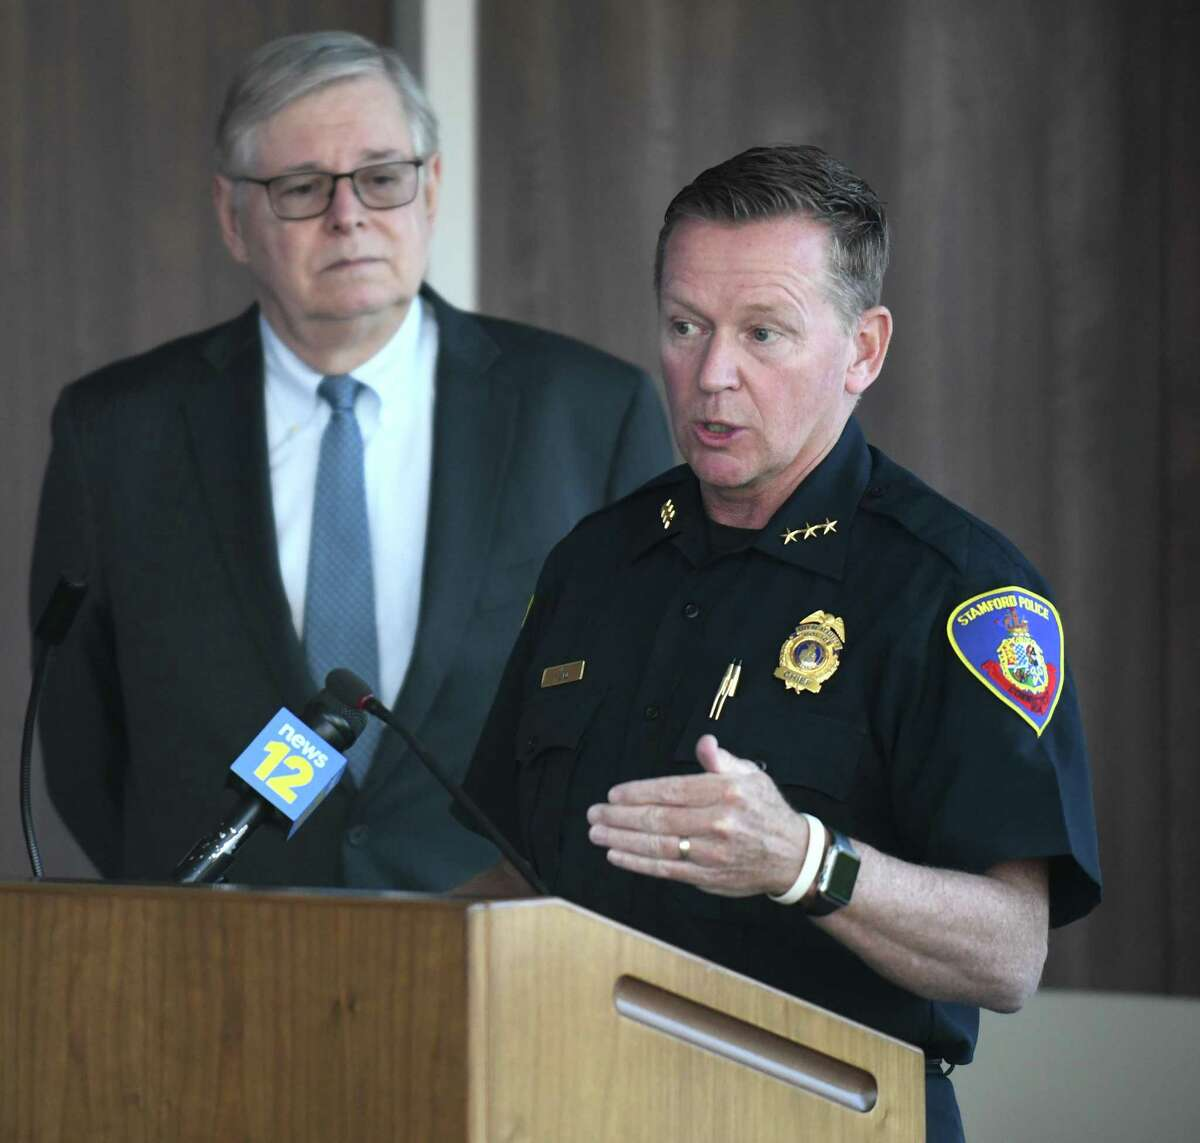 Stamford Police Chief Timothy Shaw, right, speaks beside Mayor David Martin about new mental health initiatives in policing at the Stamford Police Department in Stamford, Conn. Wednesday, May 12, 2021.